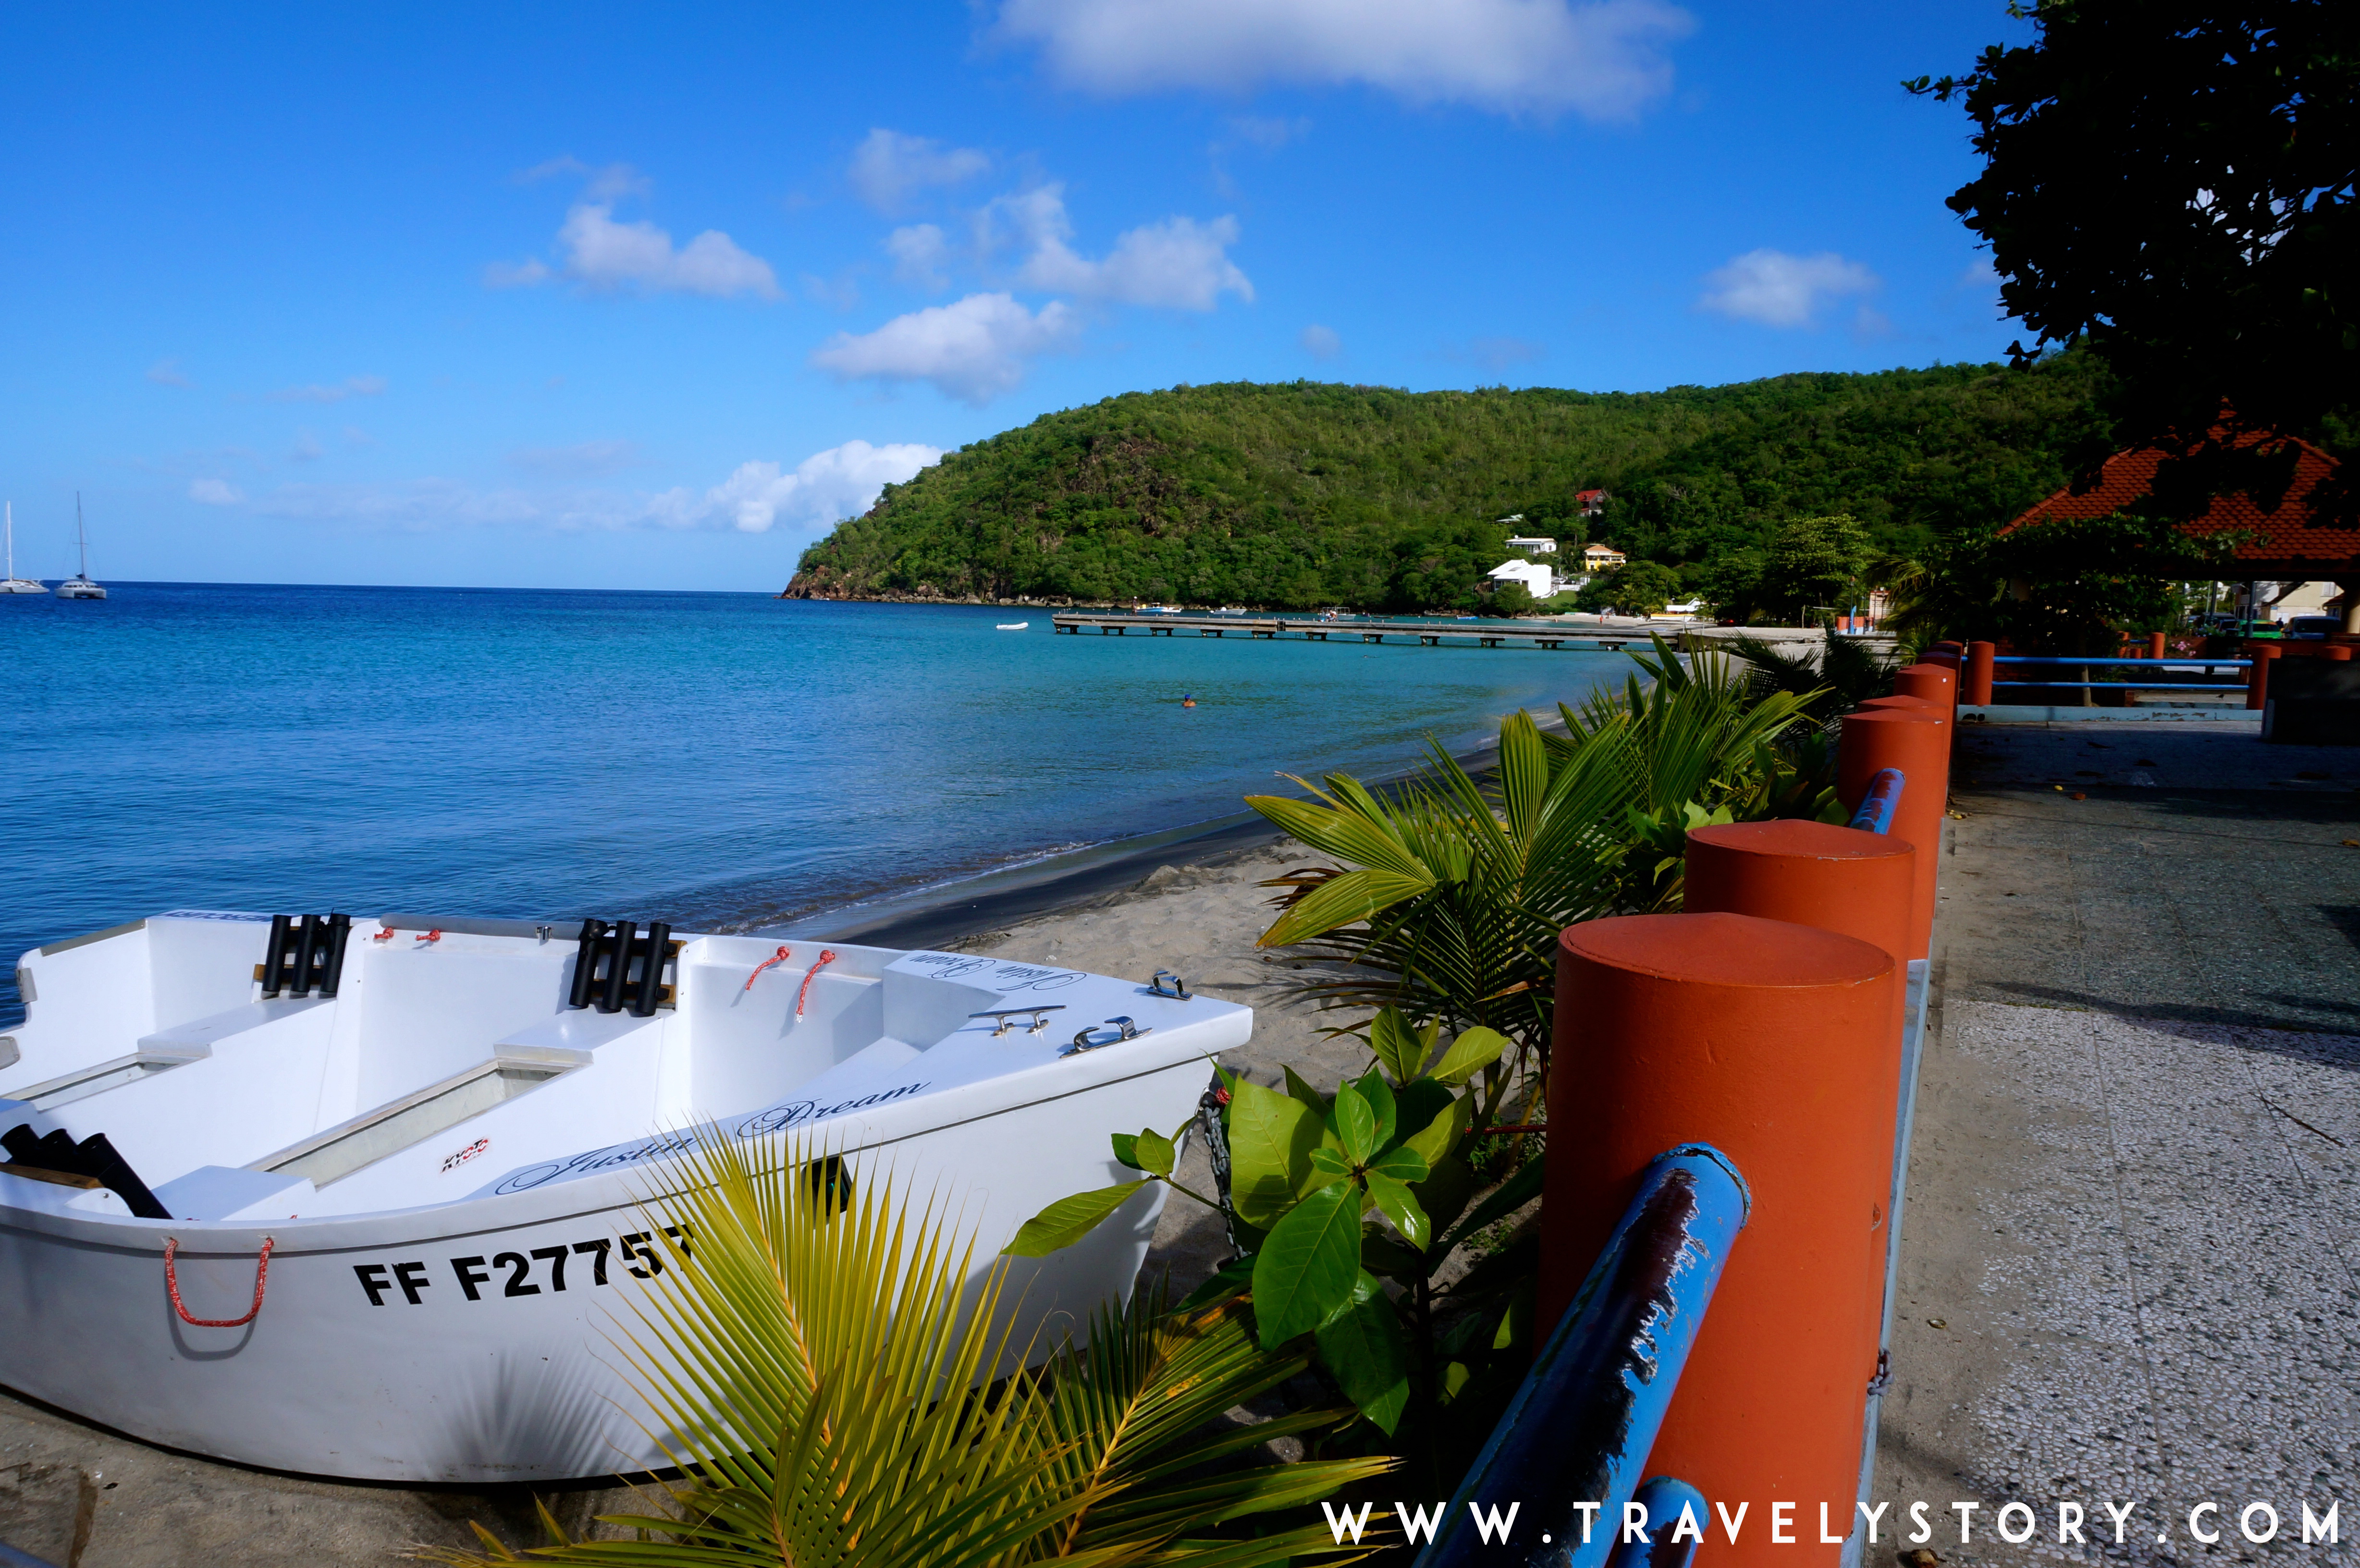 travely-story-plages-martinique-2